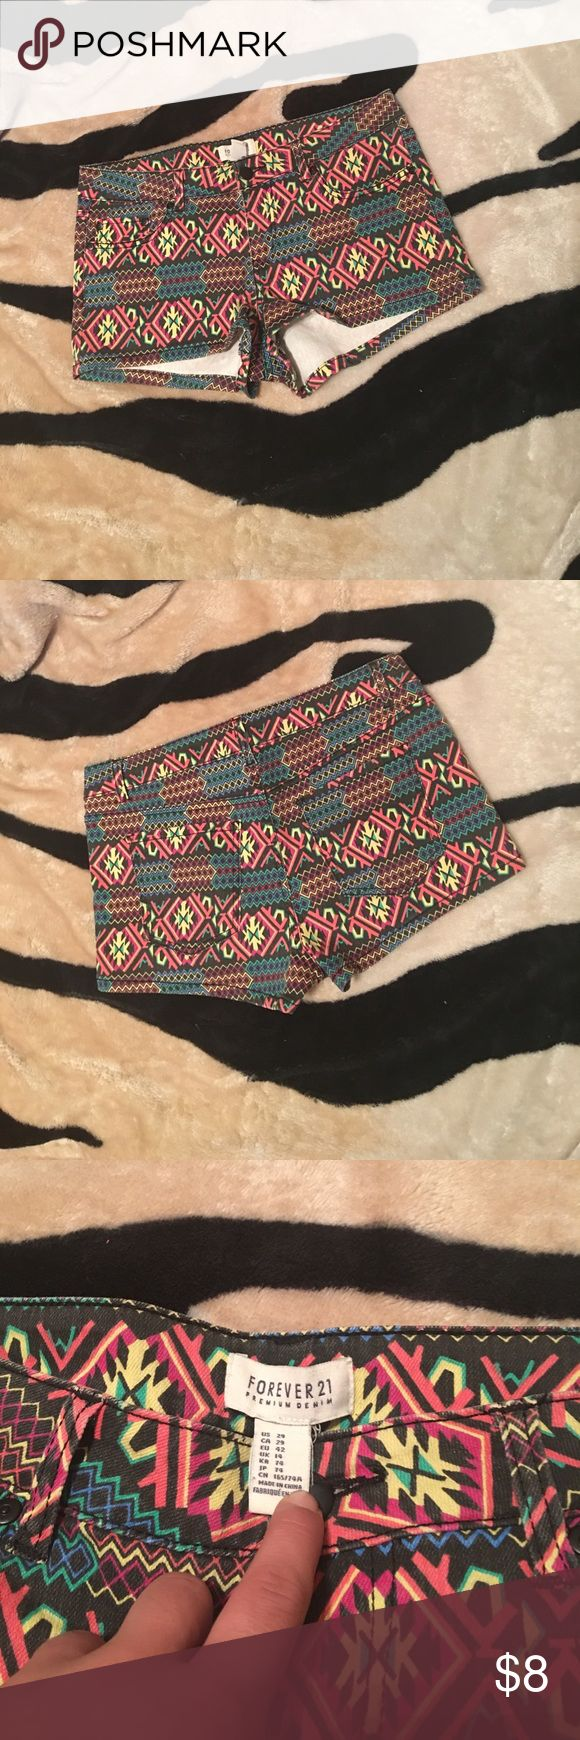 Forever 21 Aztec print shorts Size 29 Aztec print forever 21 shorts, mini length, but covers the butt! Pockets, lots of life left! Forever 21 Shorts